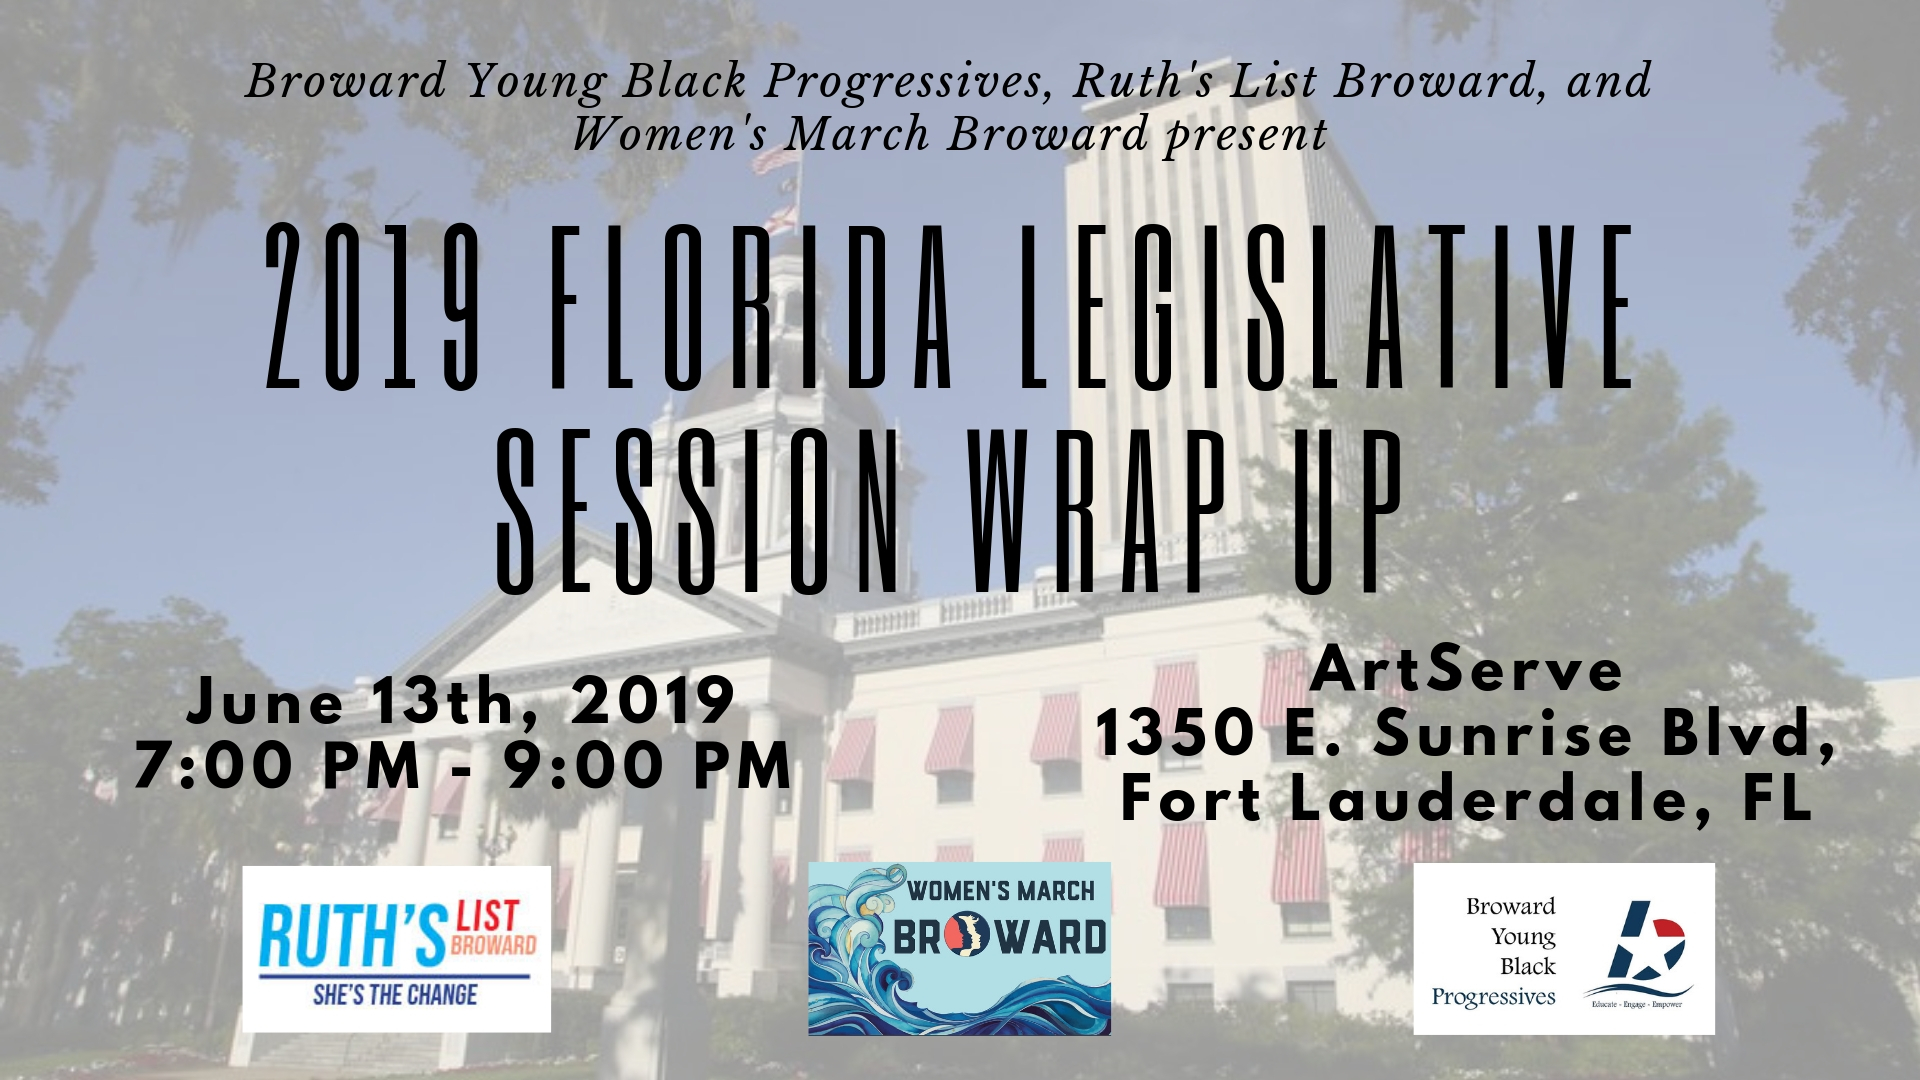 6-13-19: 2019 Florida Legislative Session Wrap Up - Join Women's March Broward, Ruth's List Broward, and Broward Young Black Progressives for an in-depth conversation on 2019 priority legislation that will impact our communities.